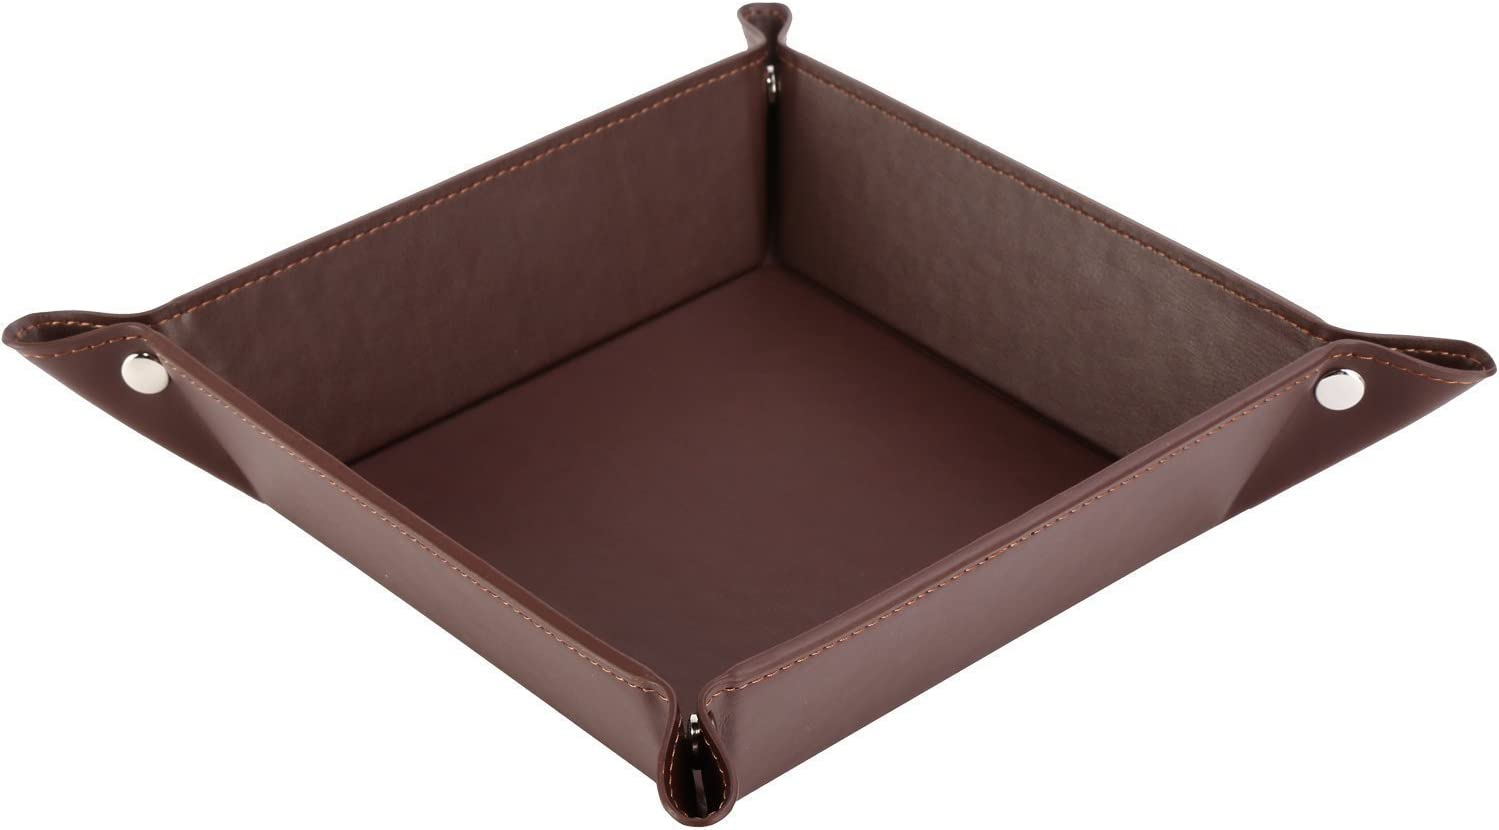 8 Compartments Catchall EDC Tray PU Leather Bedside Vanity Tray Nightstand Caddy Coin Box Key Jewelry Storage Organizer Brown SITHON Valet Tray Desktop Organizer